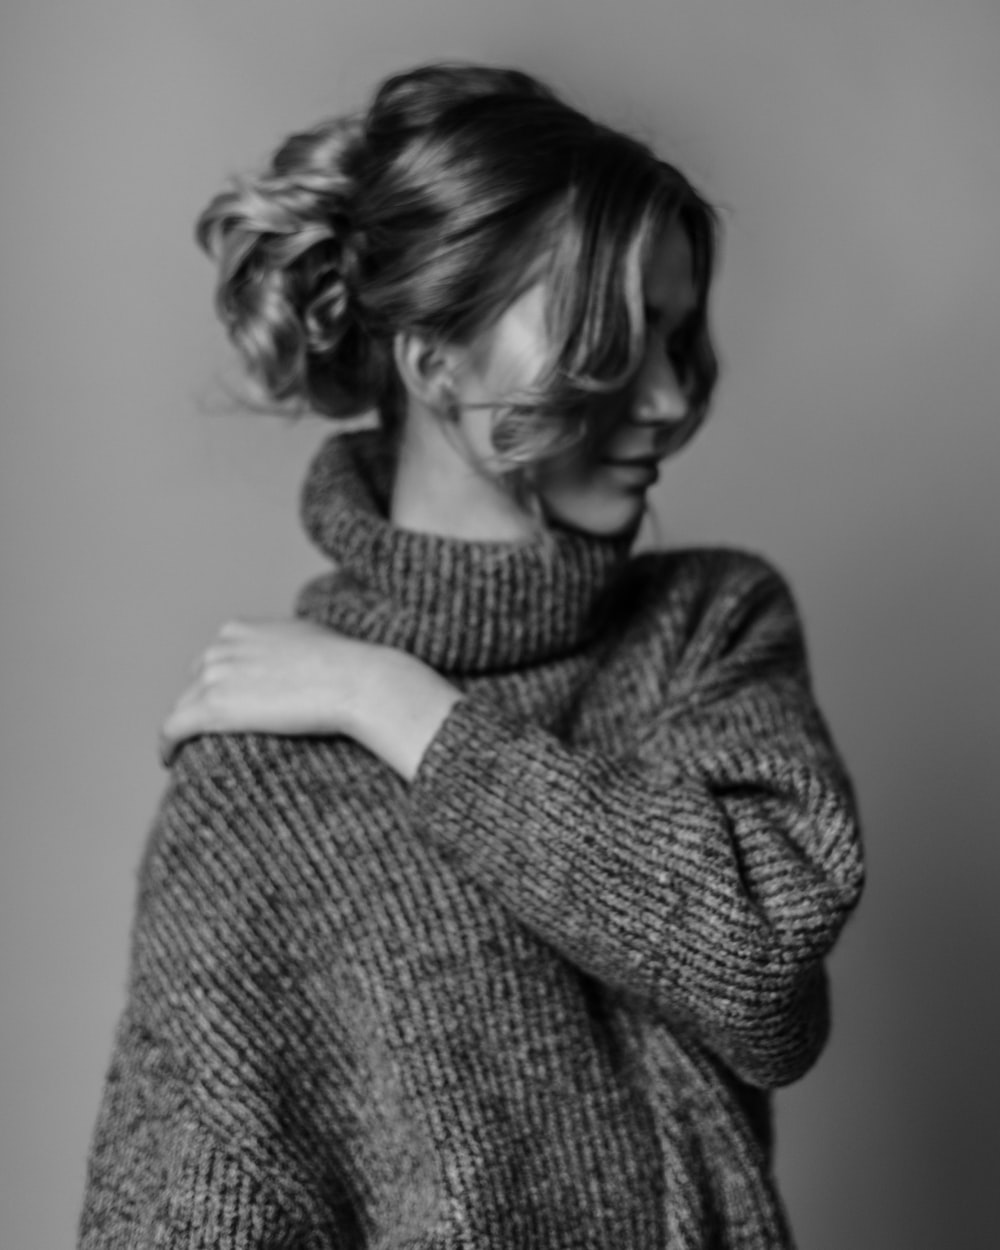 woman wearing turtleneck sweater touching her shoulder with her left hand grayscale photo